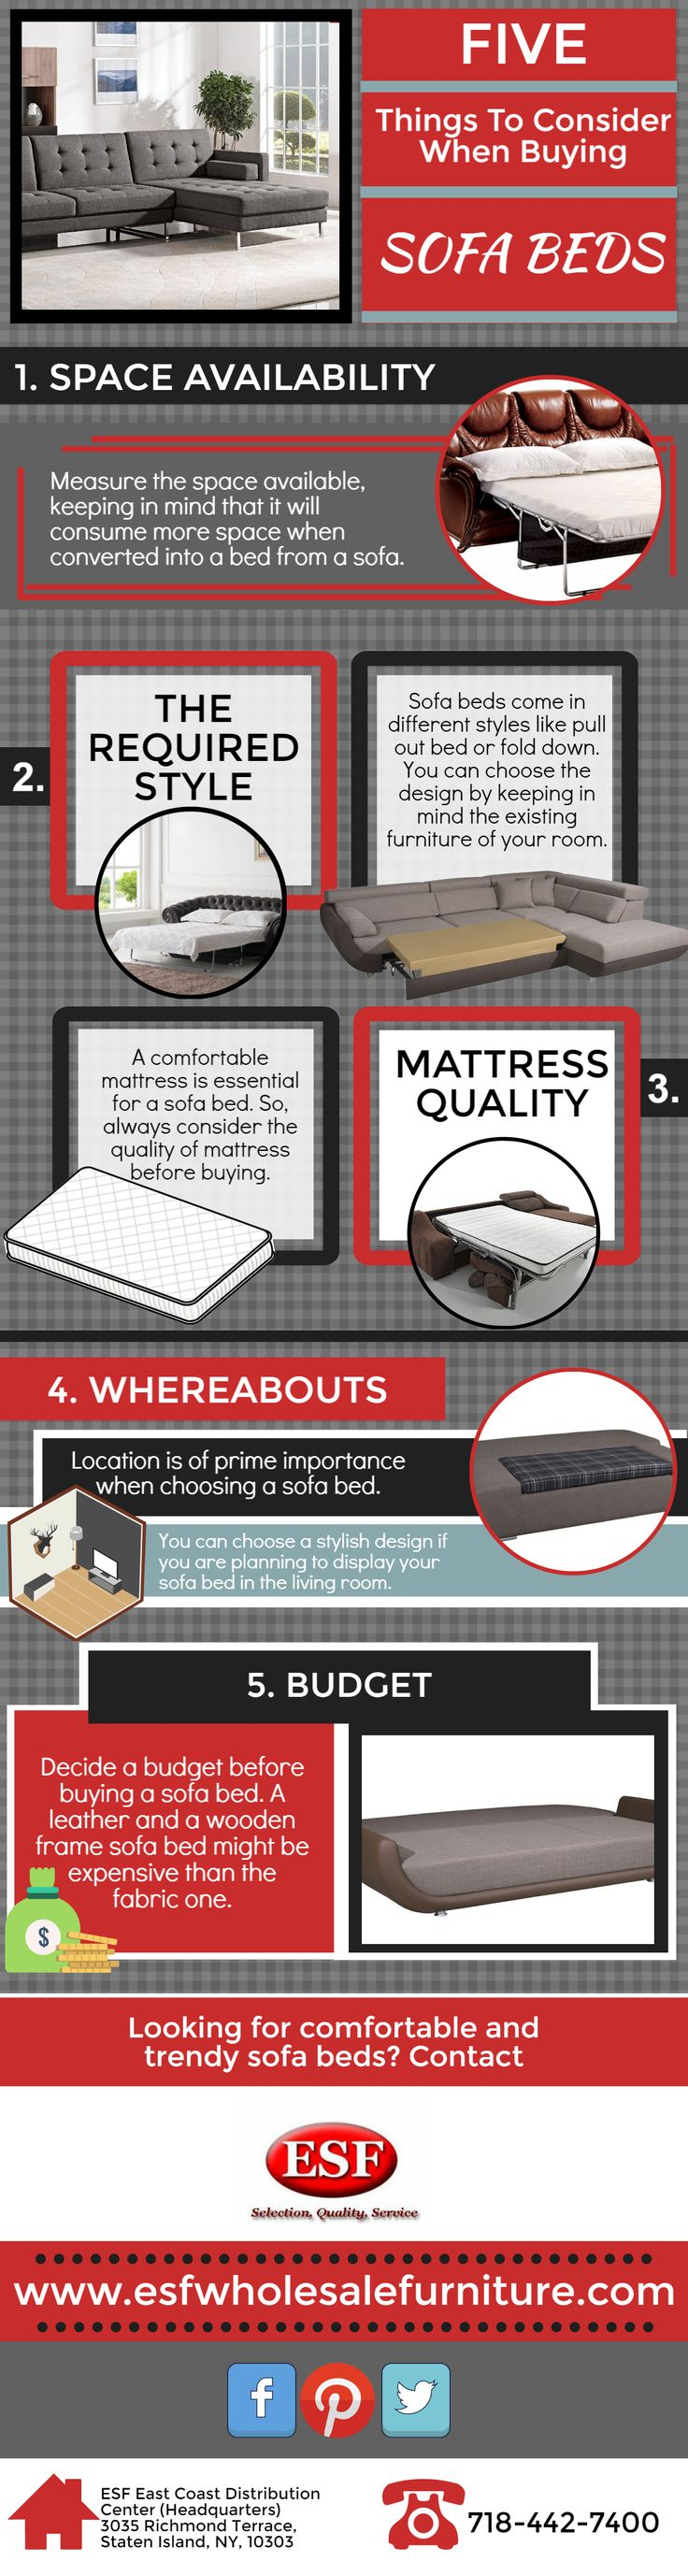 pin by esf wholesale on esf wholesale furniture pinterest